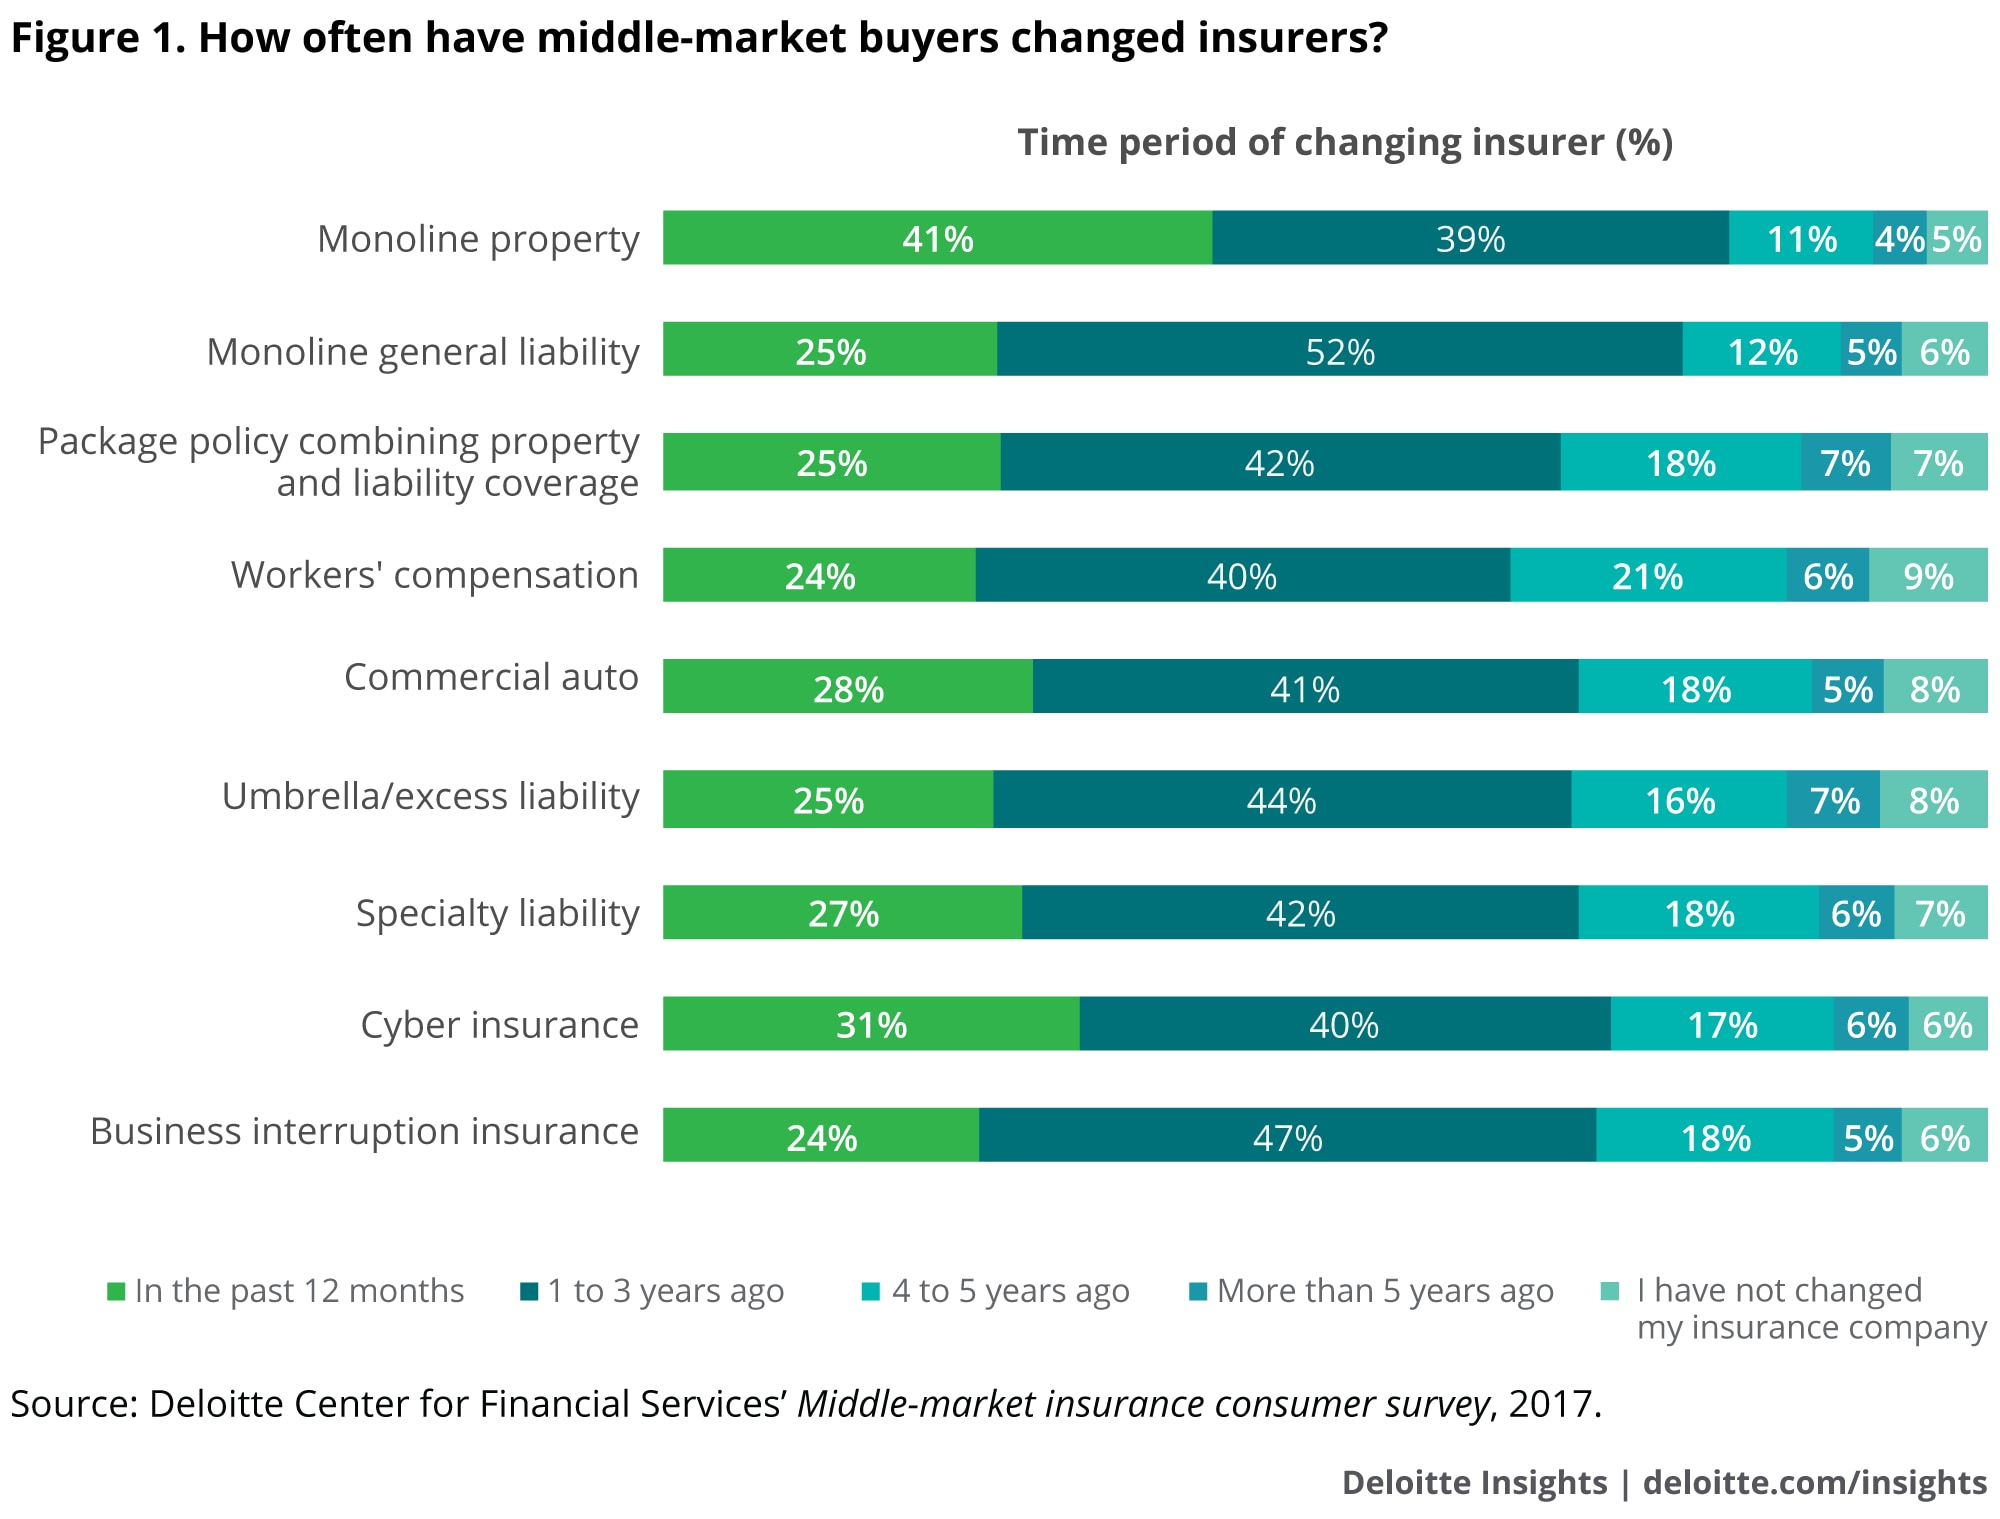 How often have middle-market buyers change insurers?